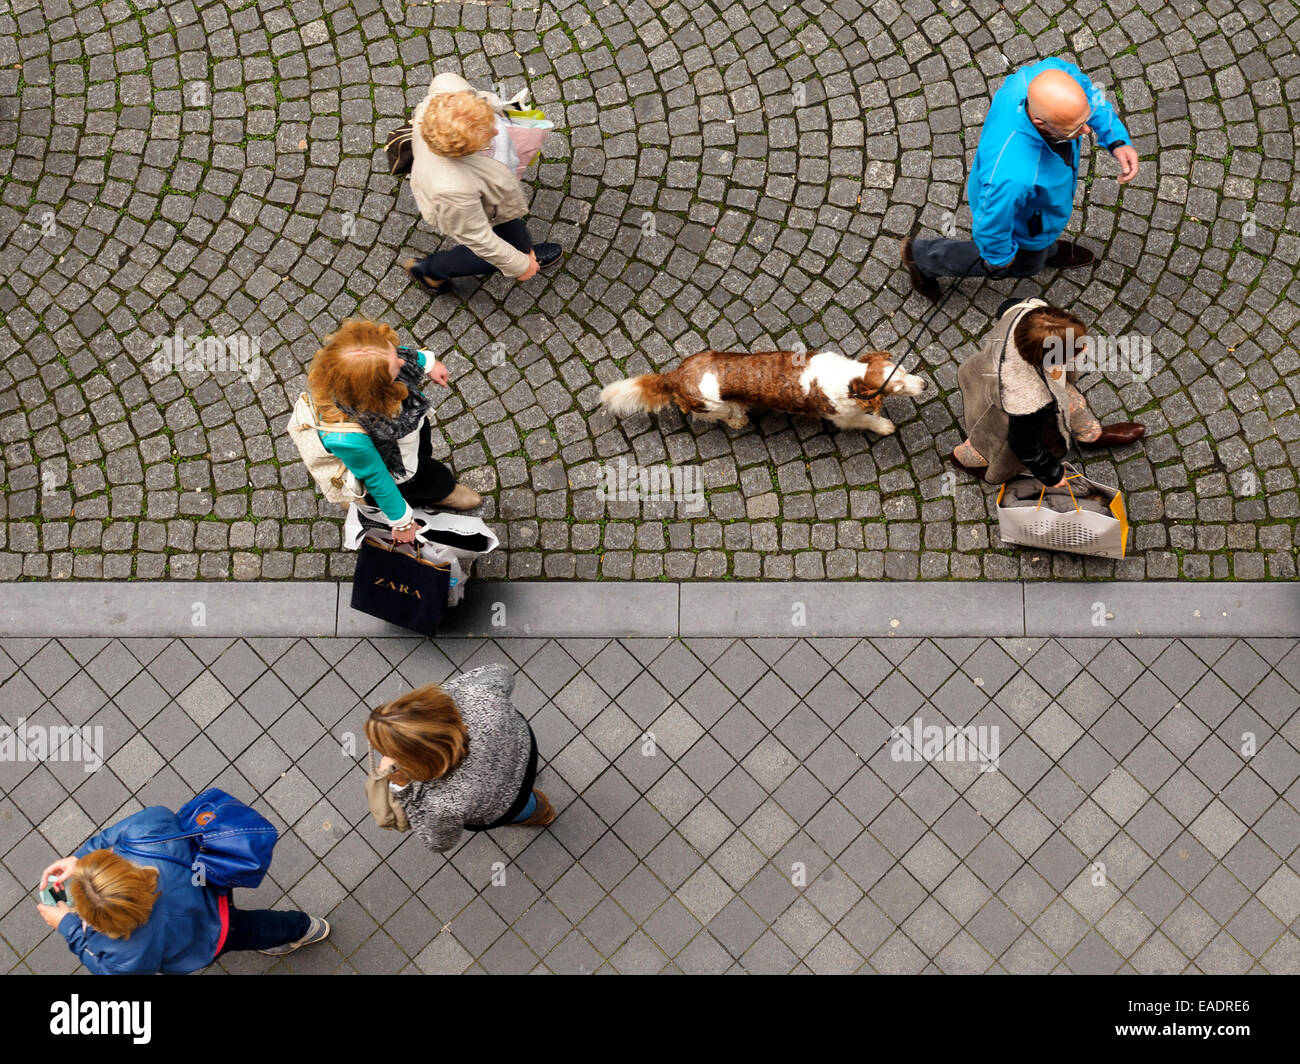 Aerial View Of People Walking Their Dog On A Leash